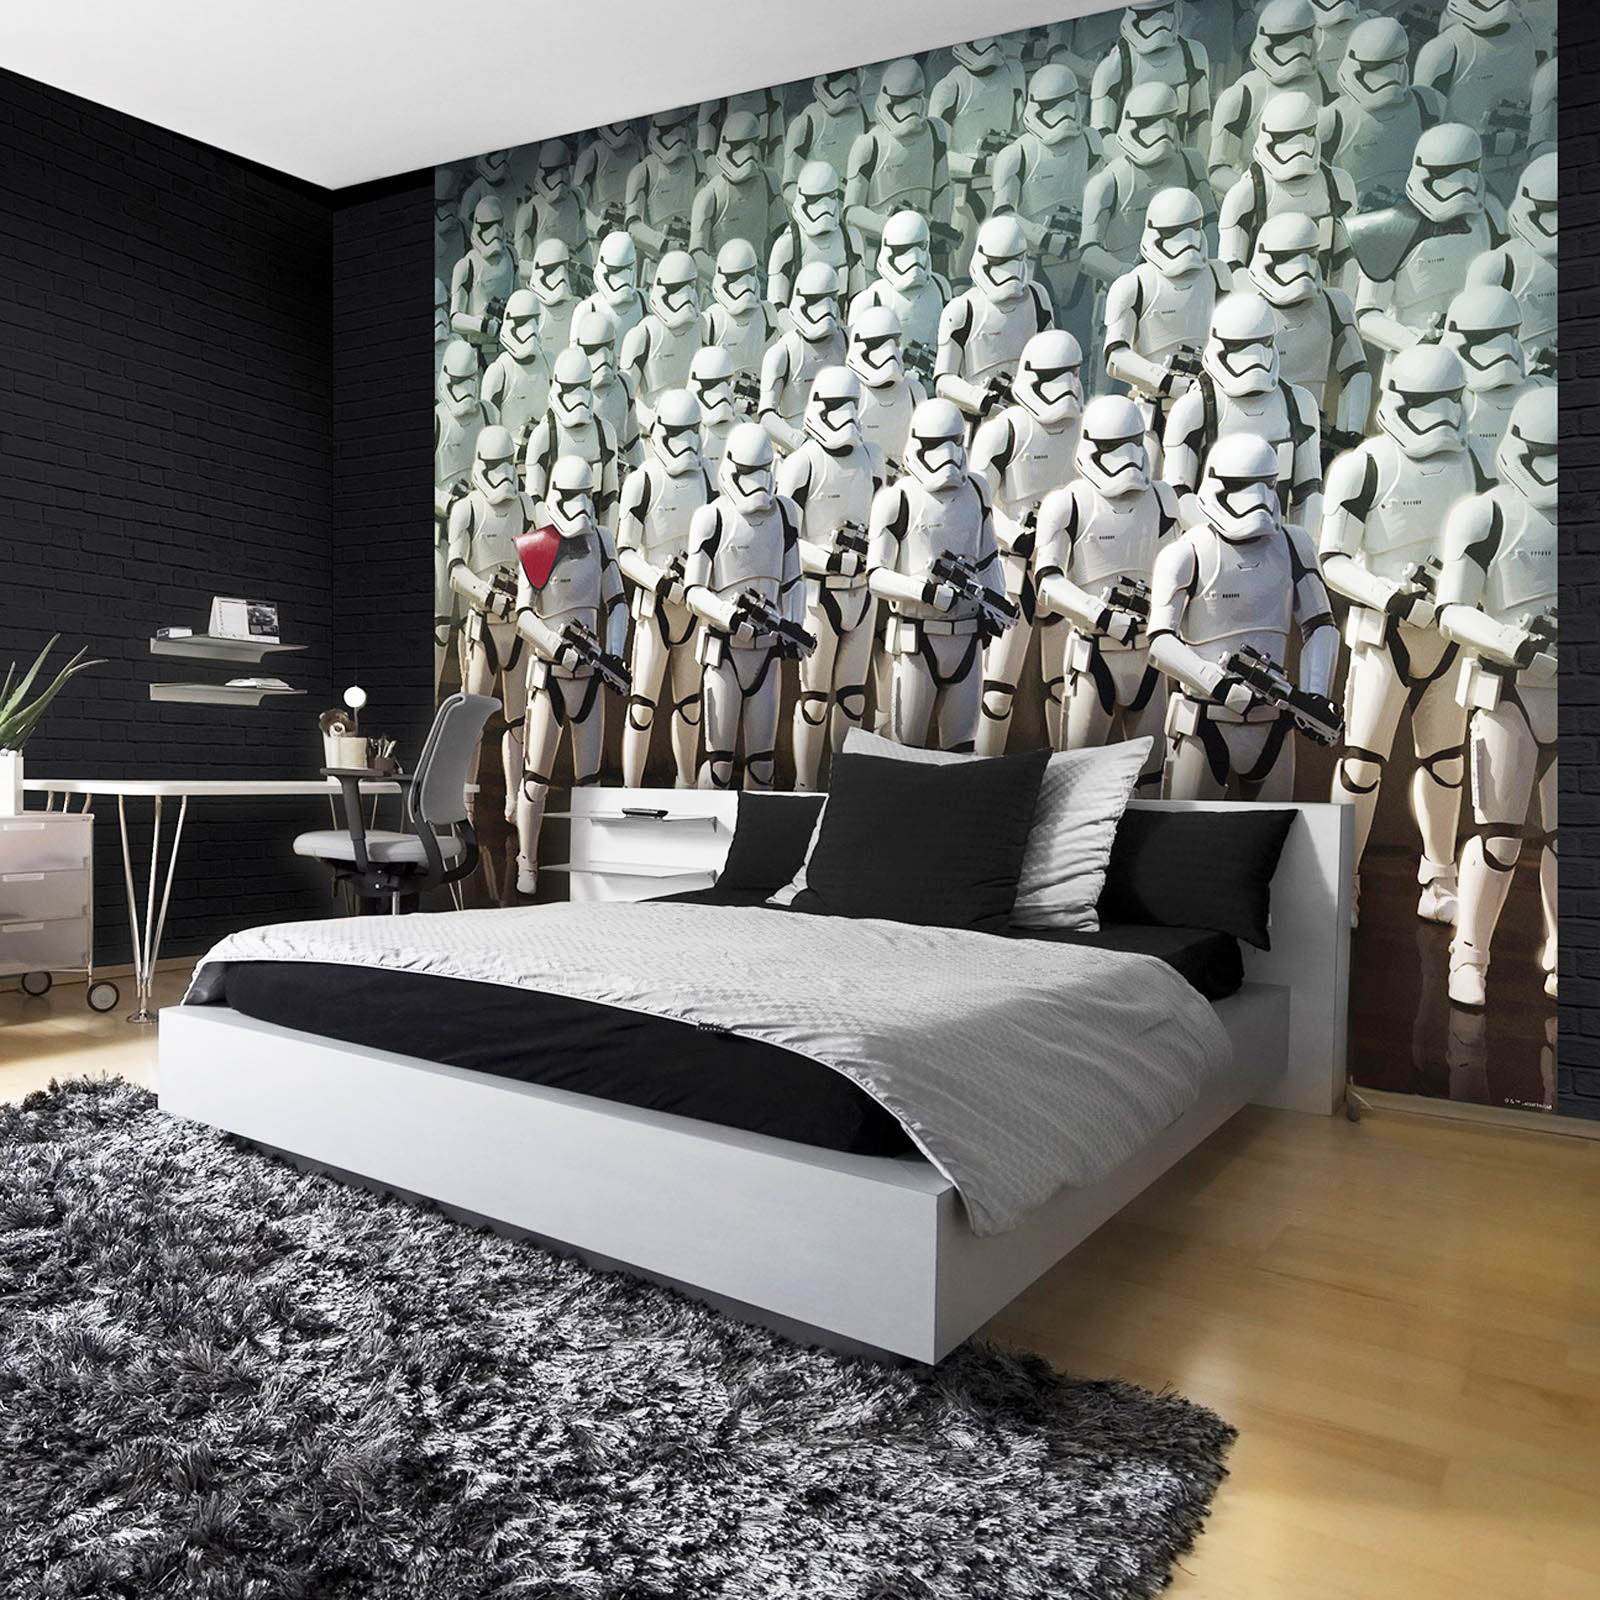 Little did they know, once they got past my ring doorbell I had an entire army of storm troopers in my room, pretty cool wallpaper.